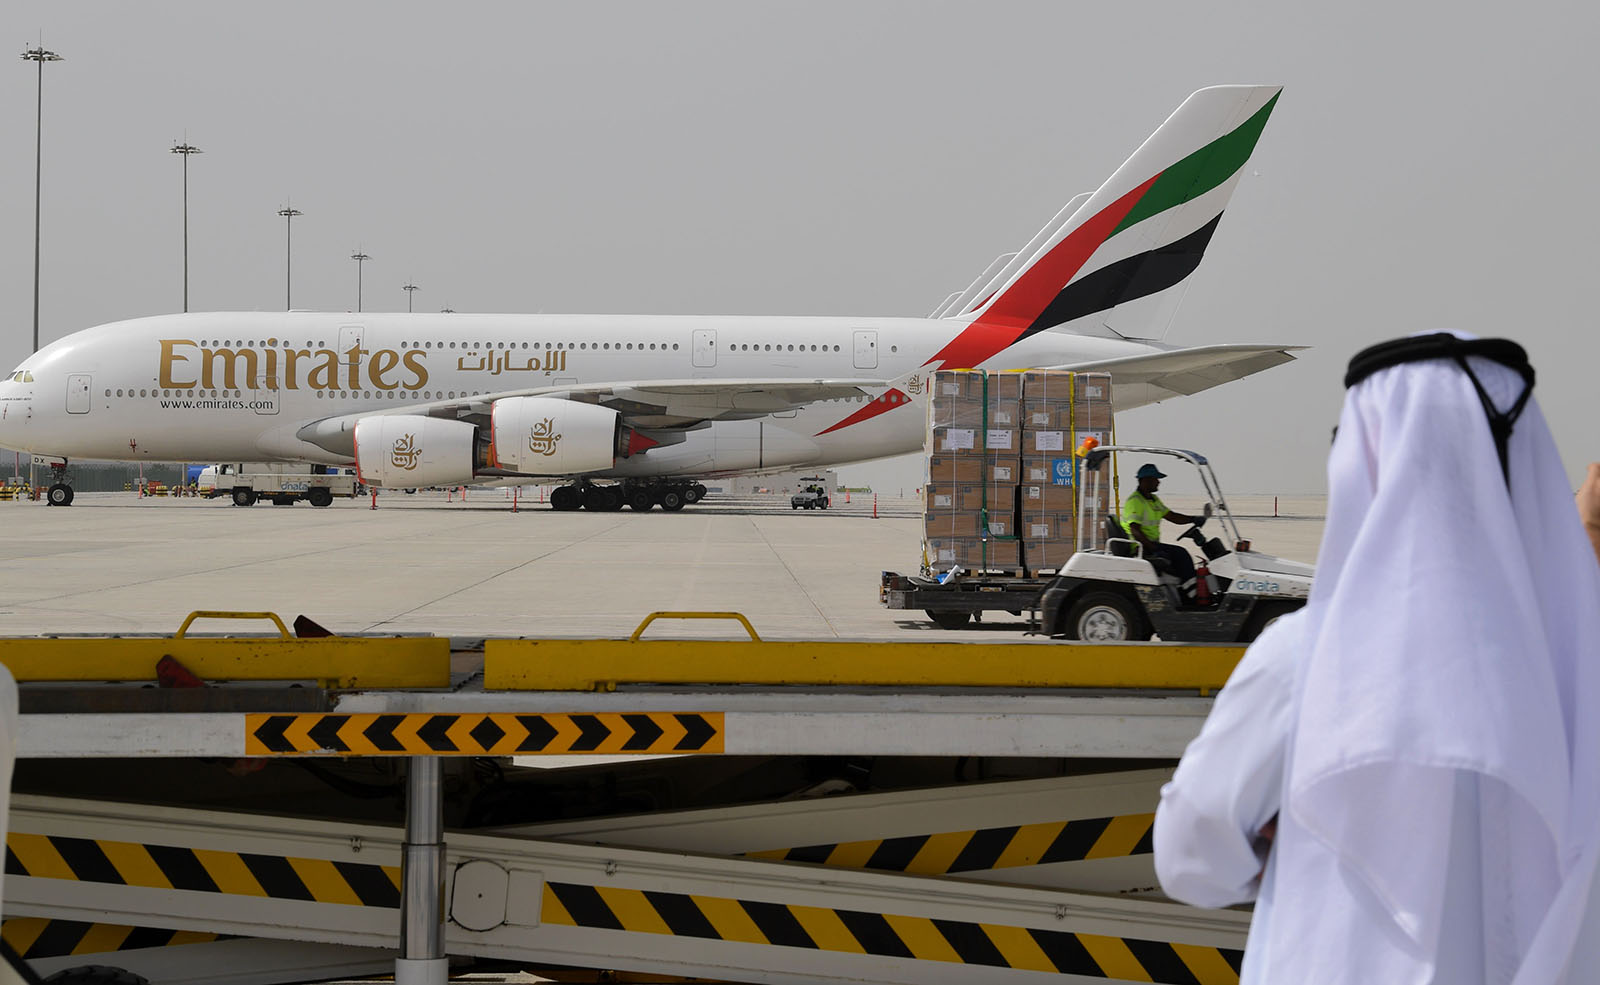 Tonnes of medical equipment and coronavirus testing kits provided by the World Health Orgnization are pictured passing by an Emirates airlines Airbus A380-861, at the al-Maktum International airport in Dubai on March 2.